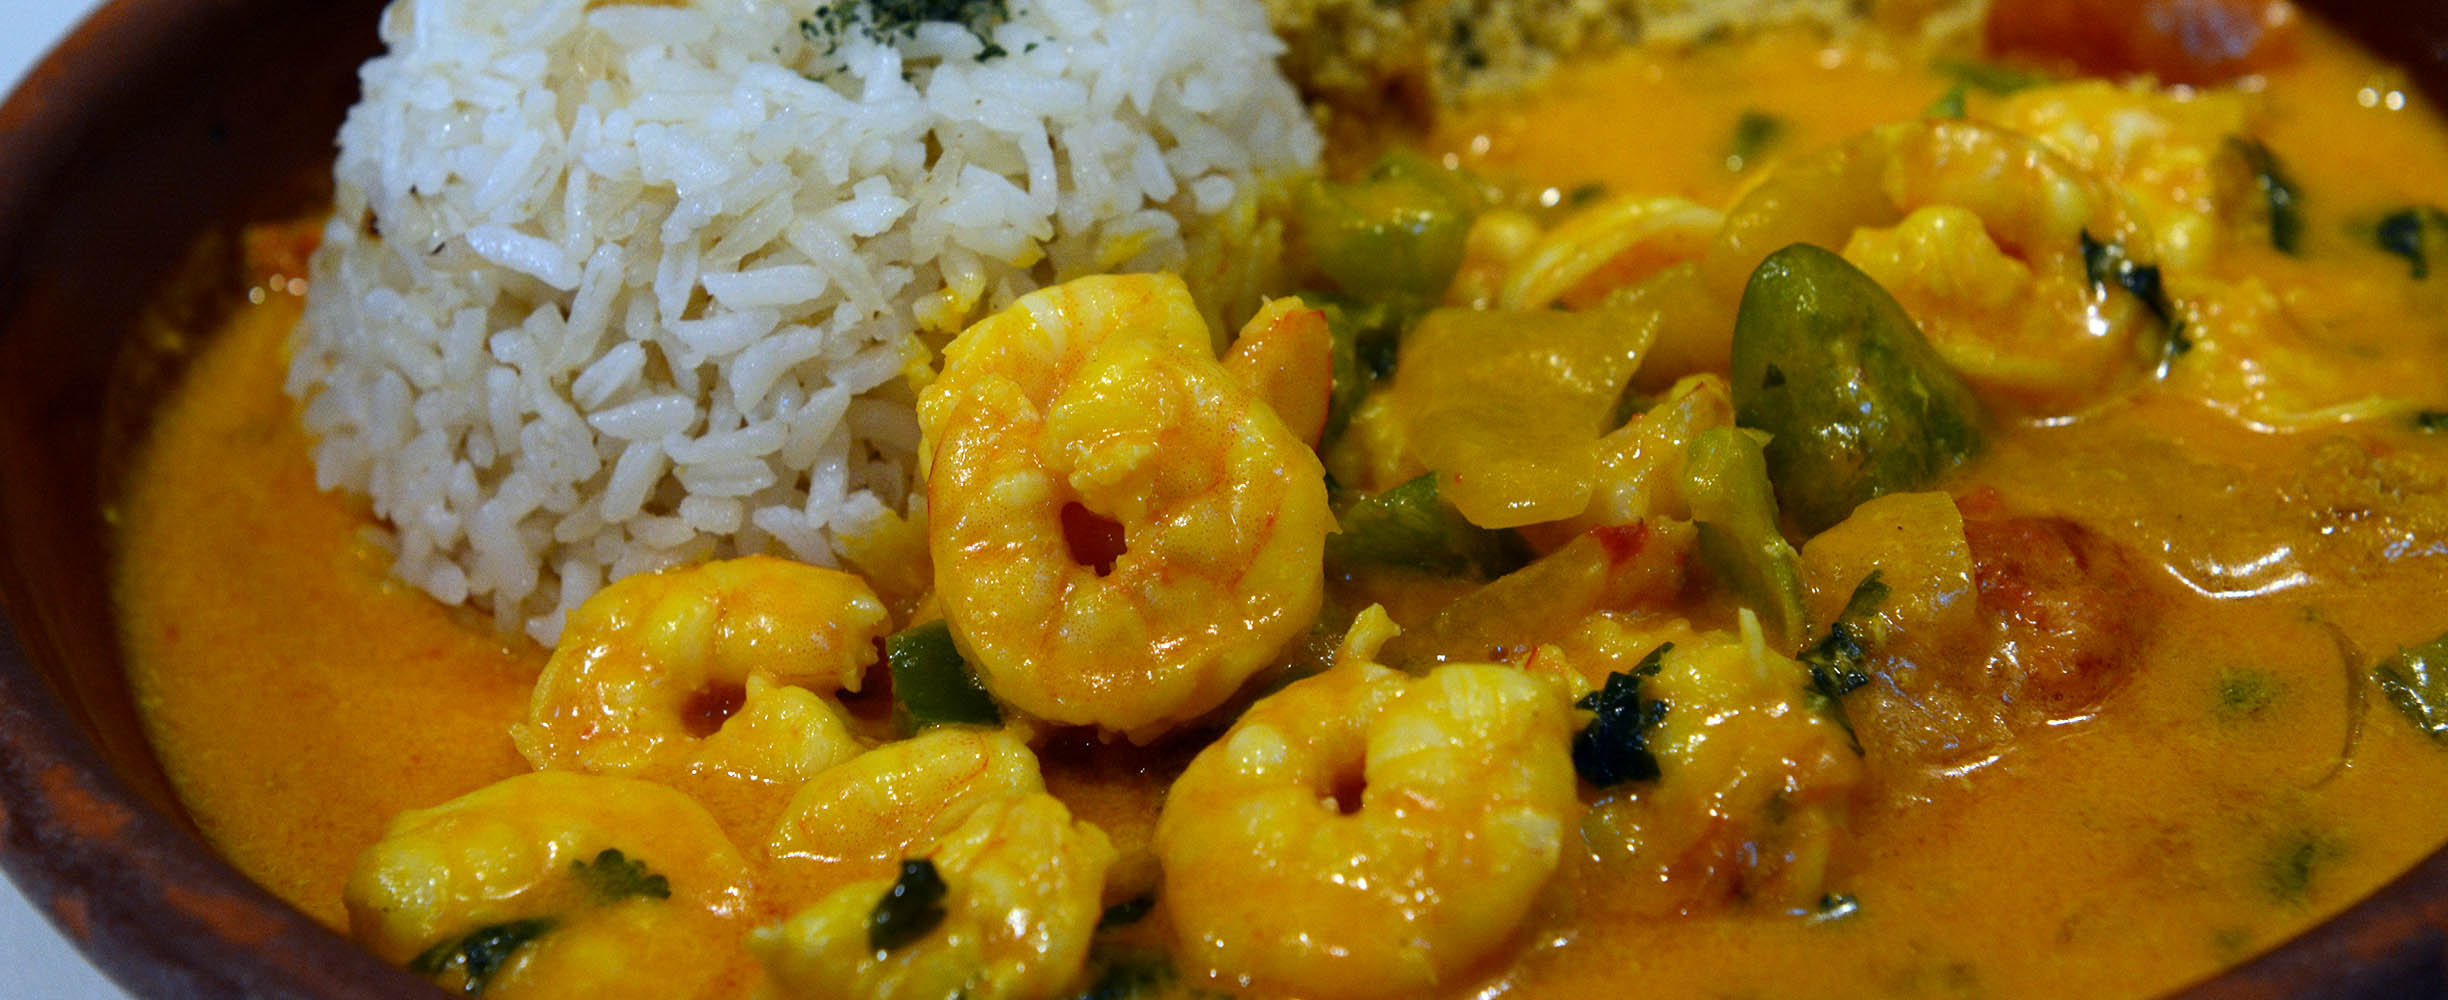 Shrimps with coconut and rice is a typical Brazilian dish.